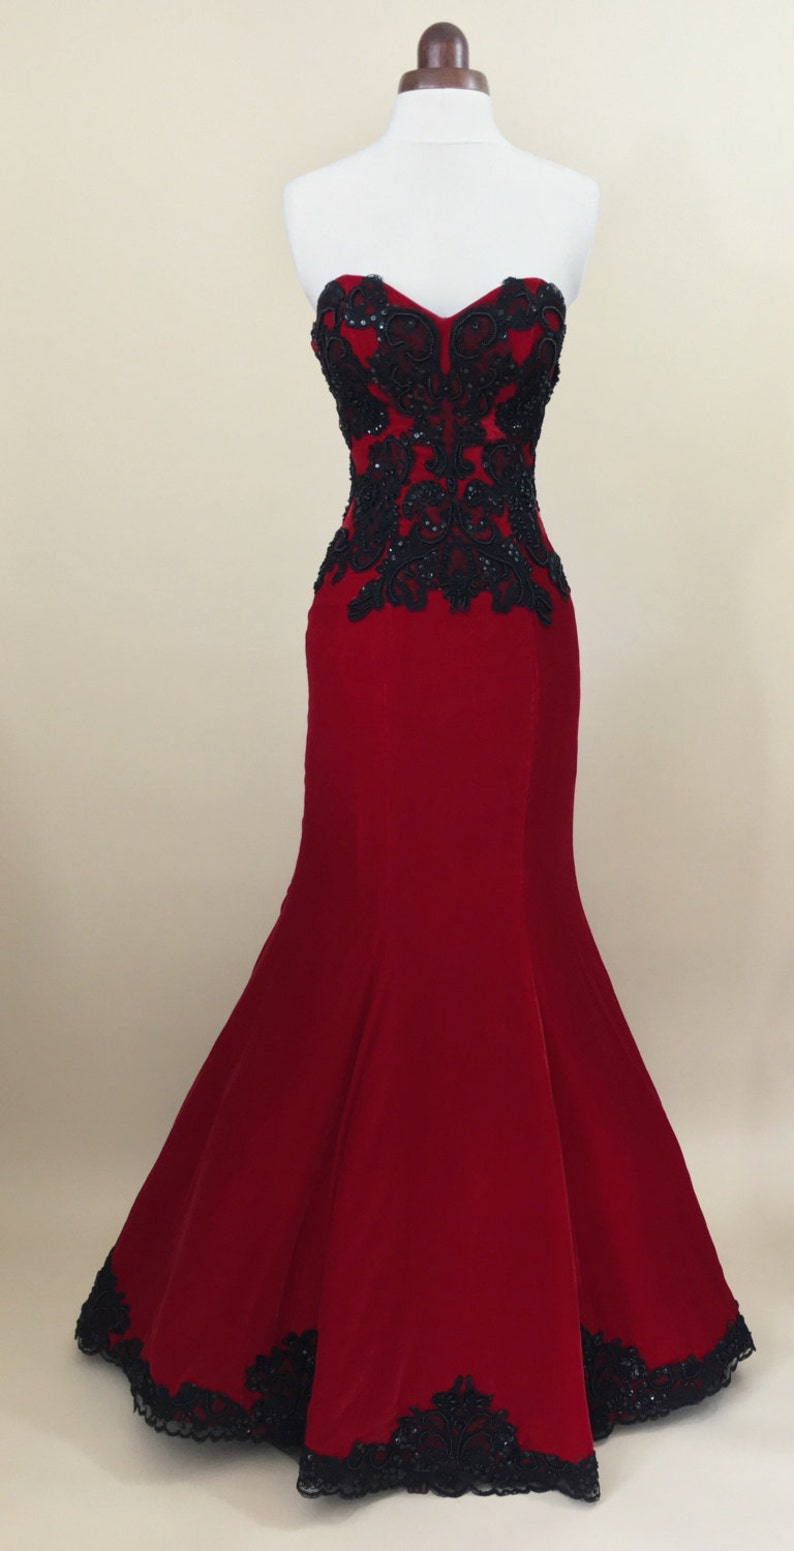 Red ball gown prom dress evening gown party dress long image 0